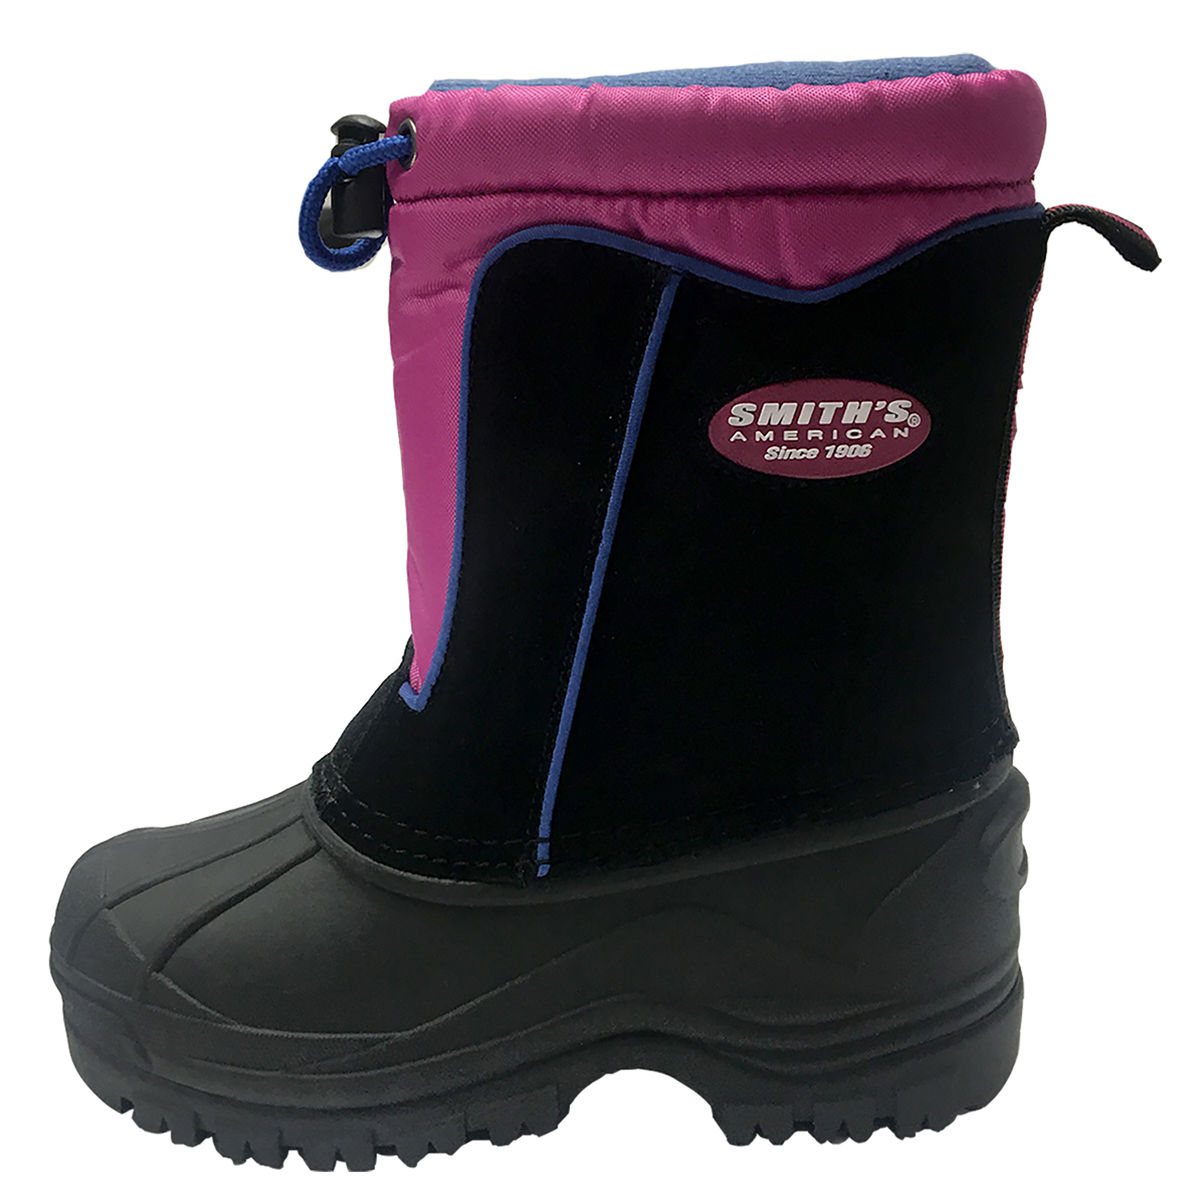 Smiths Norah Kids Winter Boot